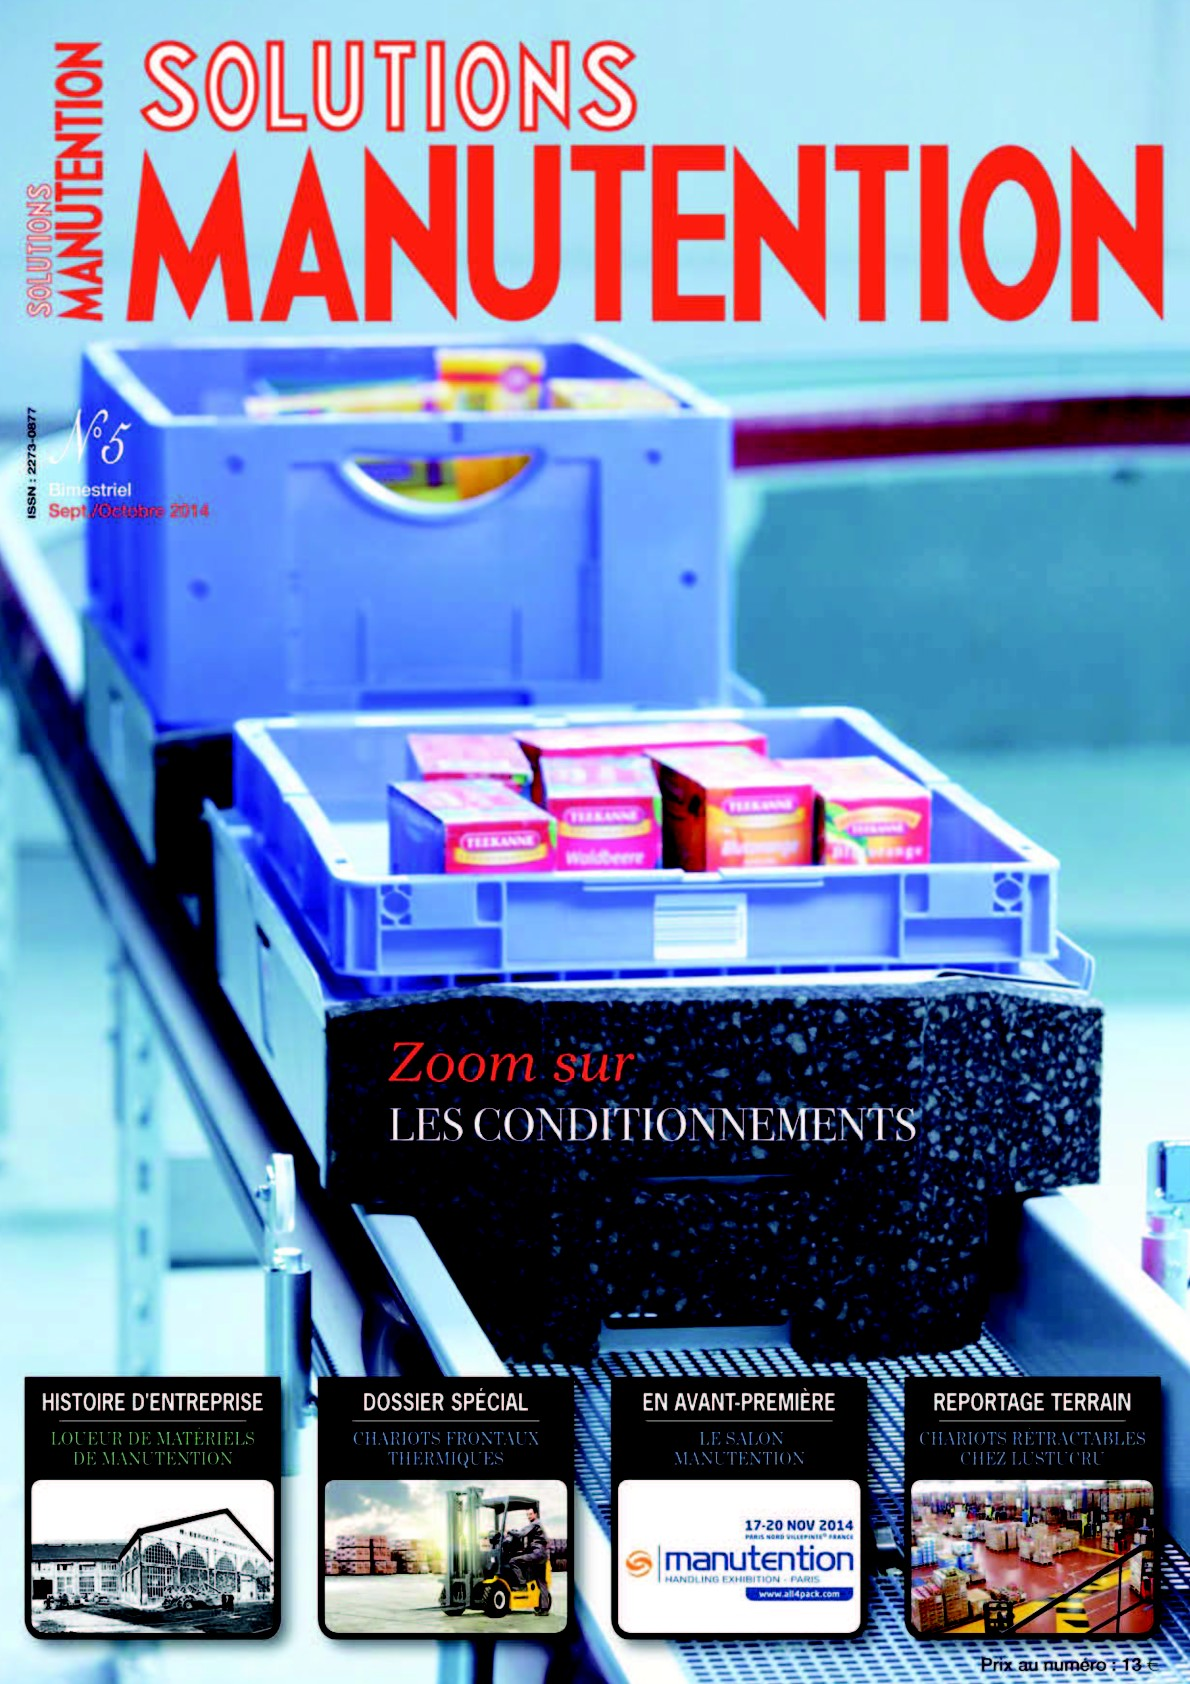 Solutions_Manutention_Sept_Oct_2014-001-001